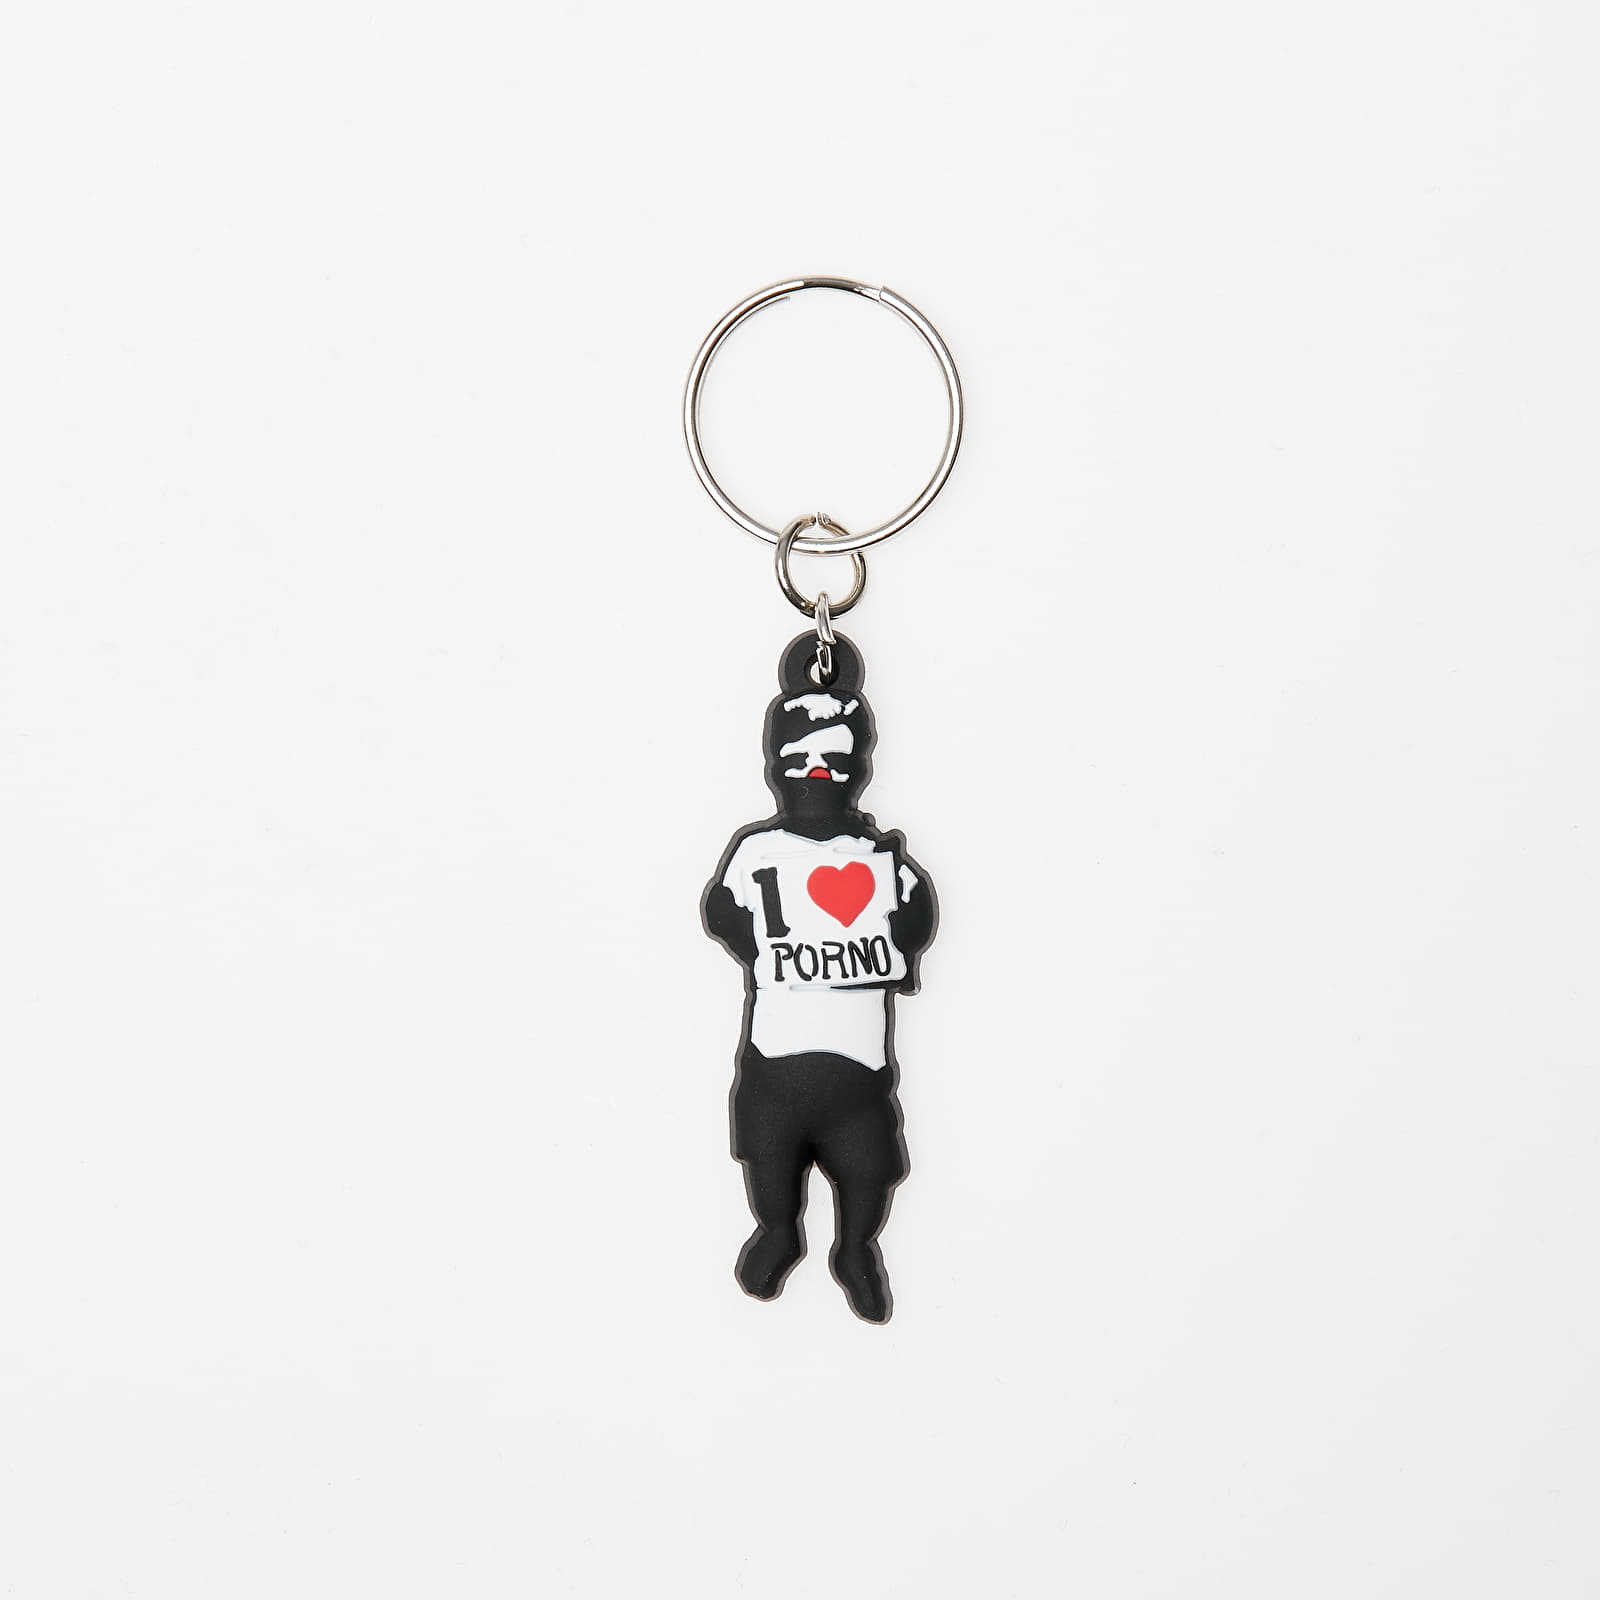 Weitere Accessoires LIFE IS PORNO Keychain Rumpel Multicolor